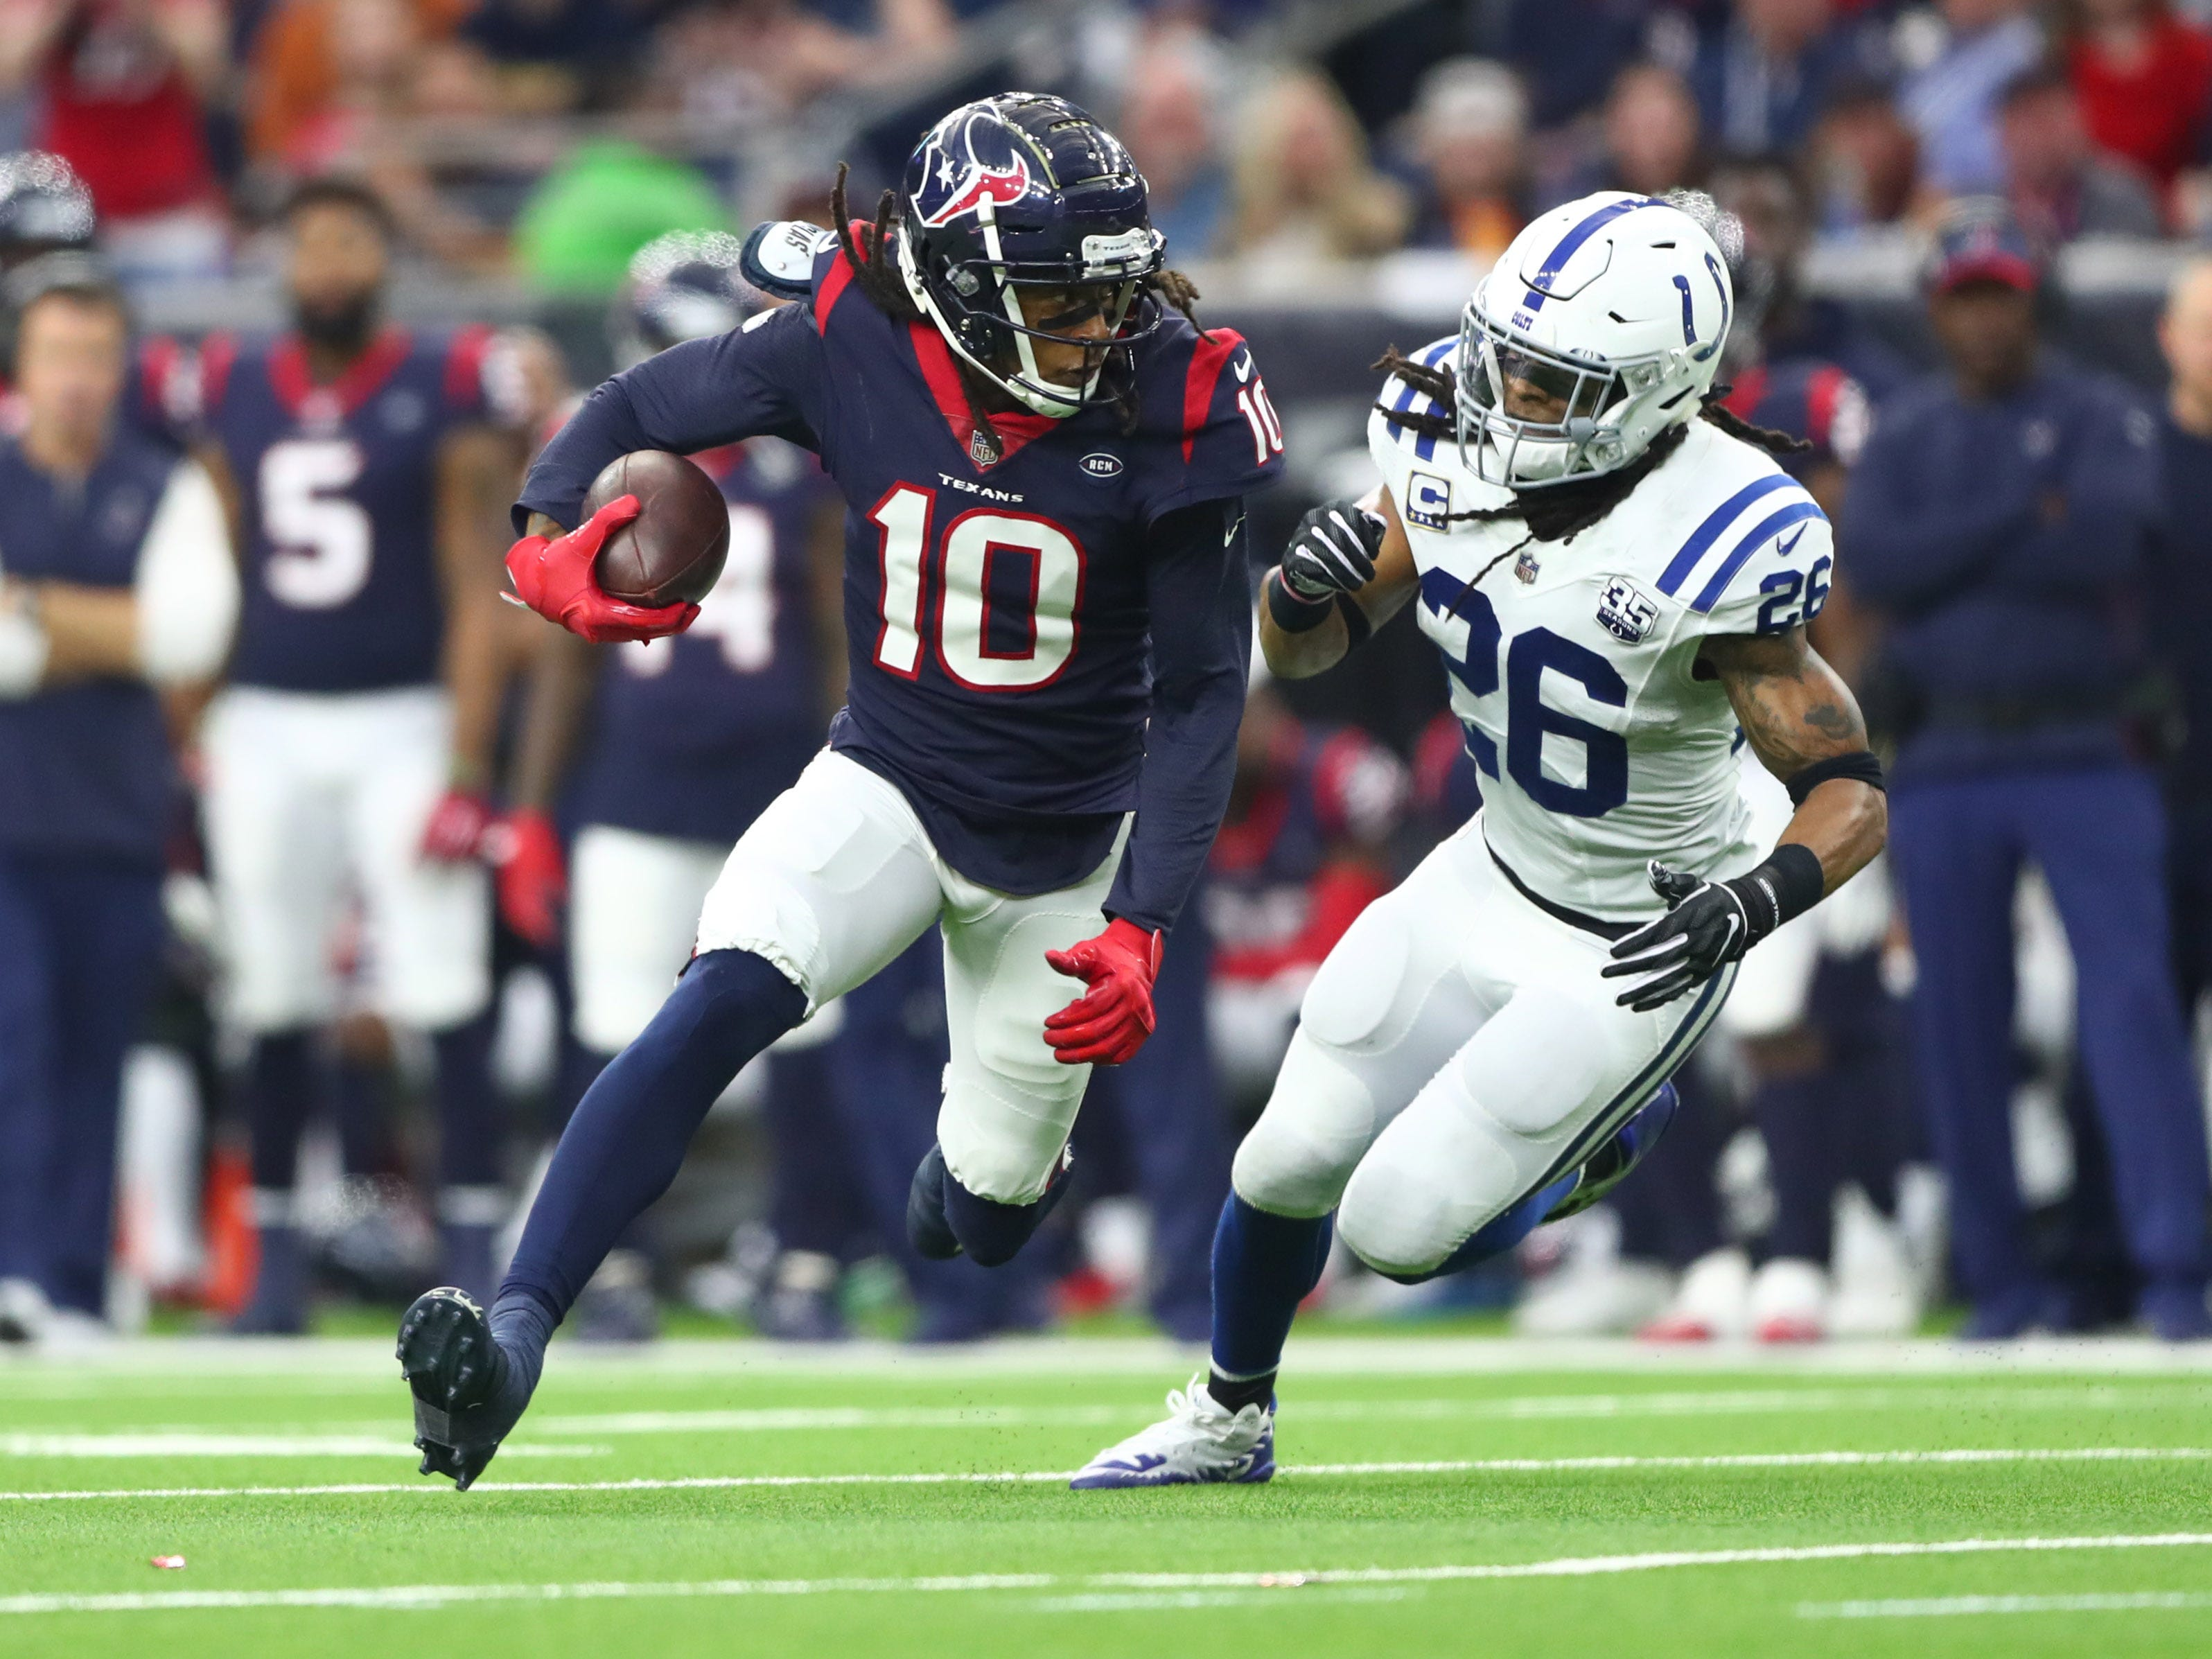 Houston Texans wide receiver DeAndre Hopkins (10) is chased by Indianapolis Colts strong safety Clayton Geathers (26)  in the second quarter in a AFC Wild Card playoff football game at NRG Stadium.